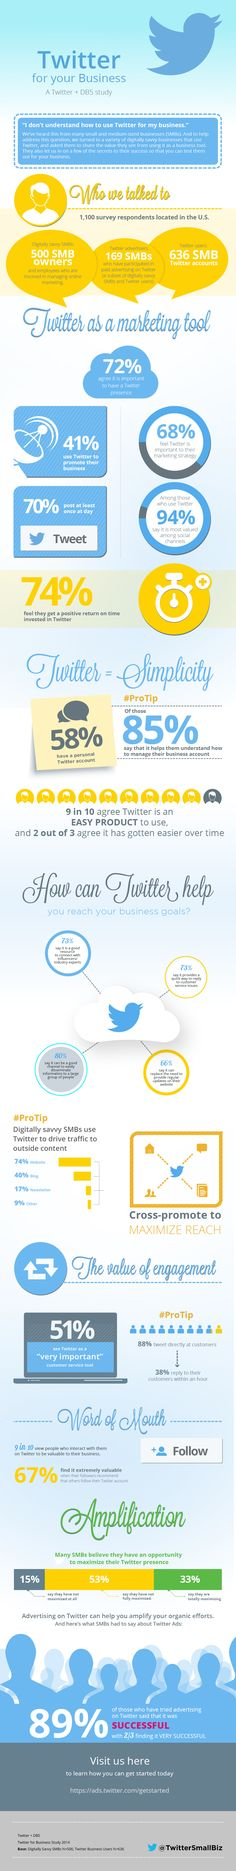 How To Use Twitter For Your Small Business [INFOGRAPHIC]